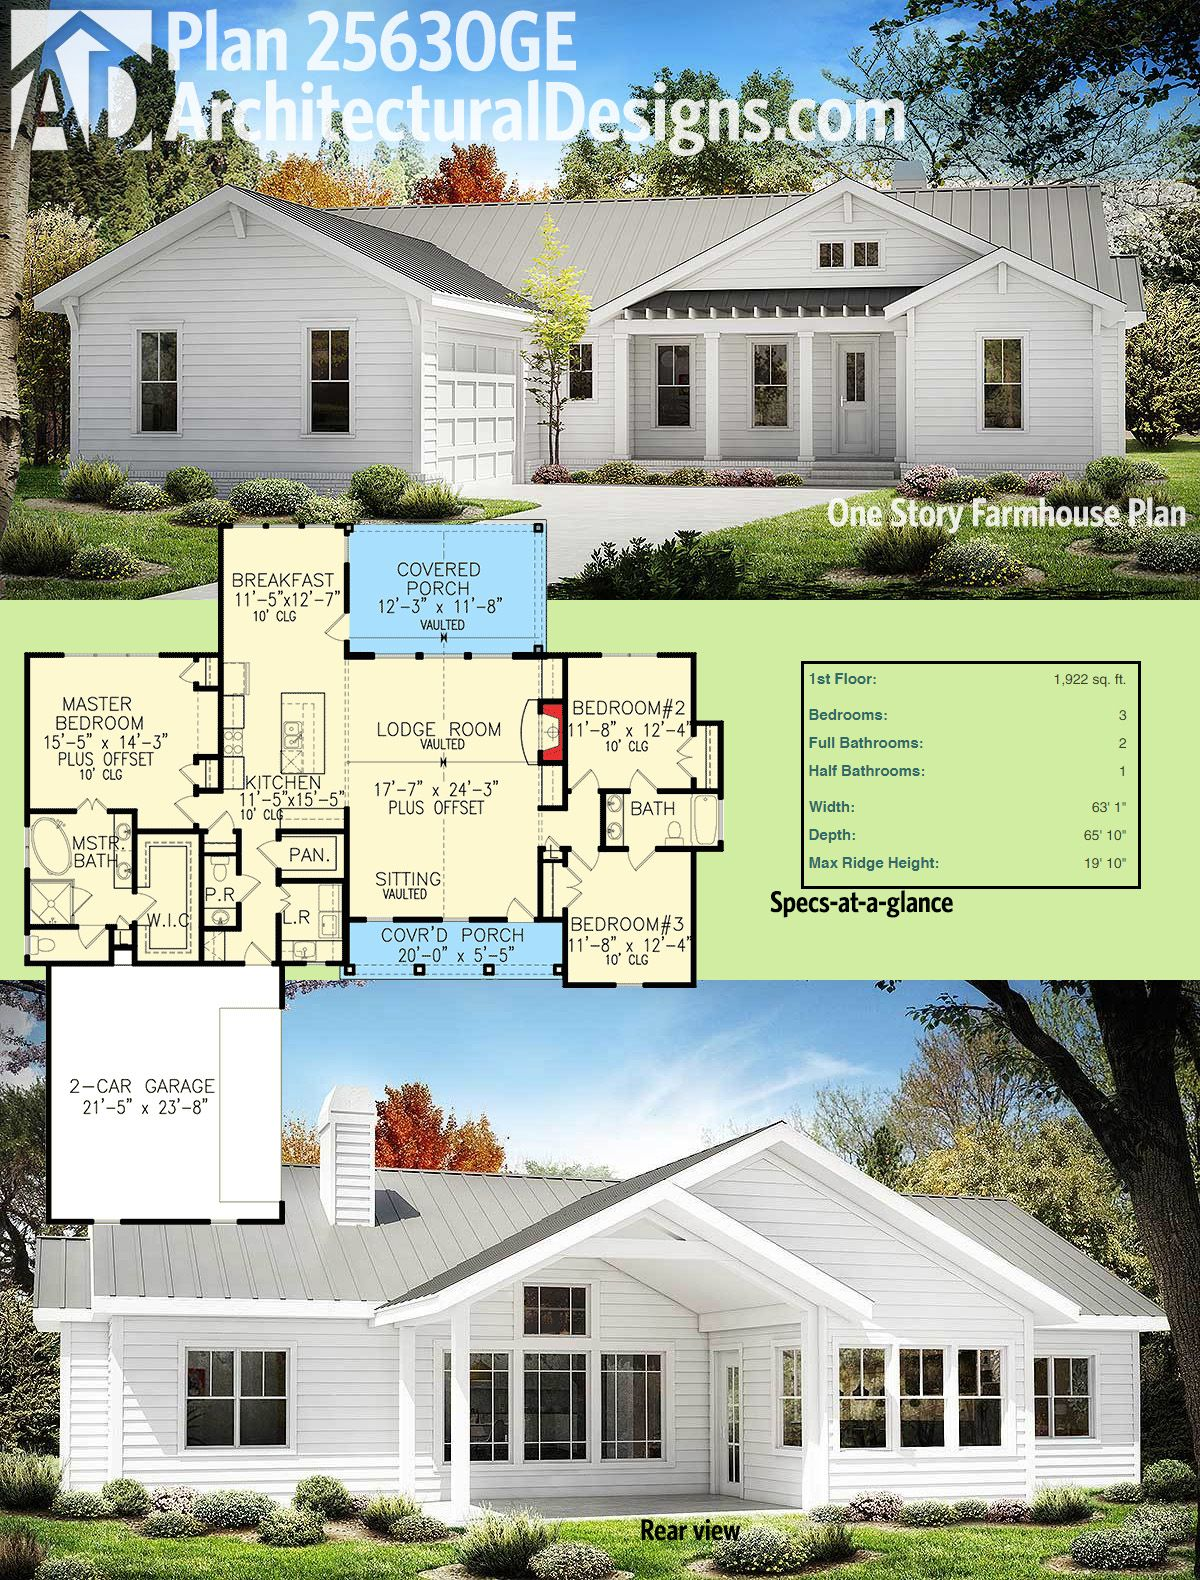 plan 25630ge one story farmhouse plan new american home plans rh pinterest com